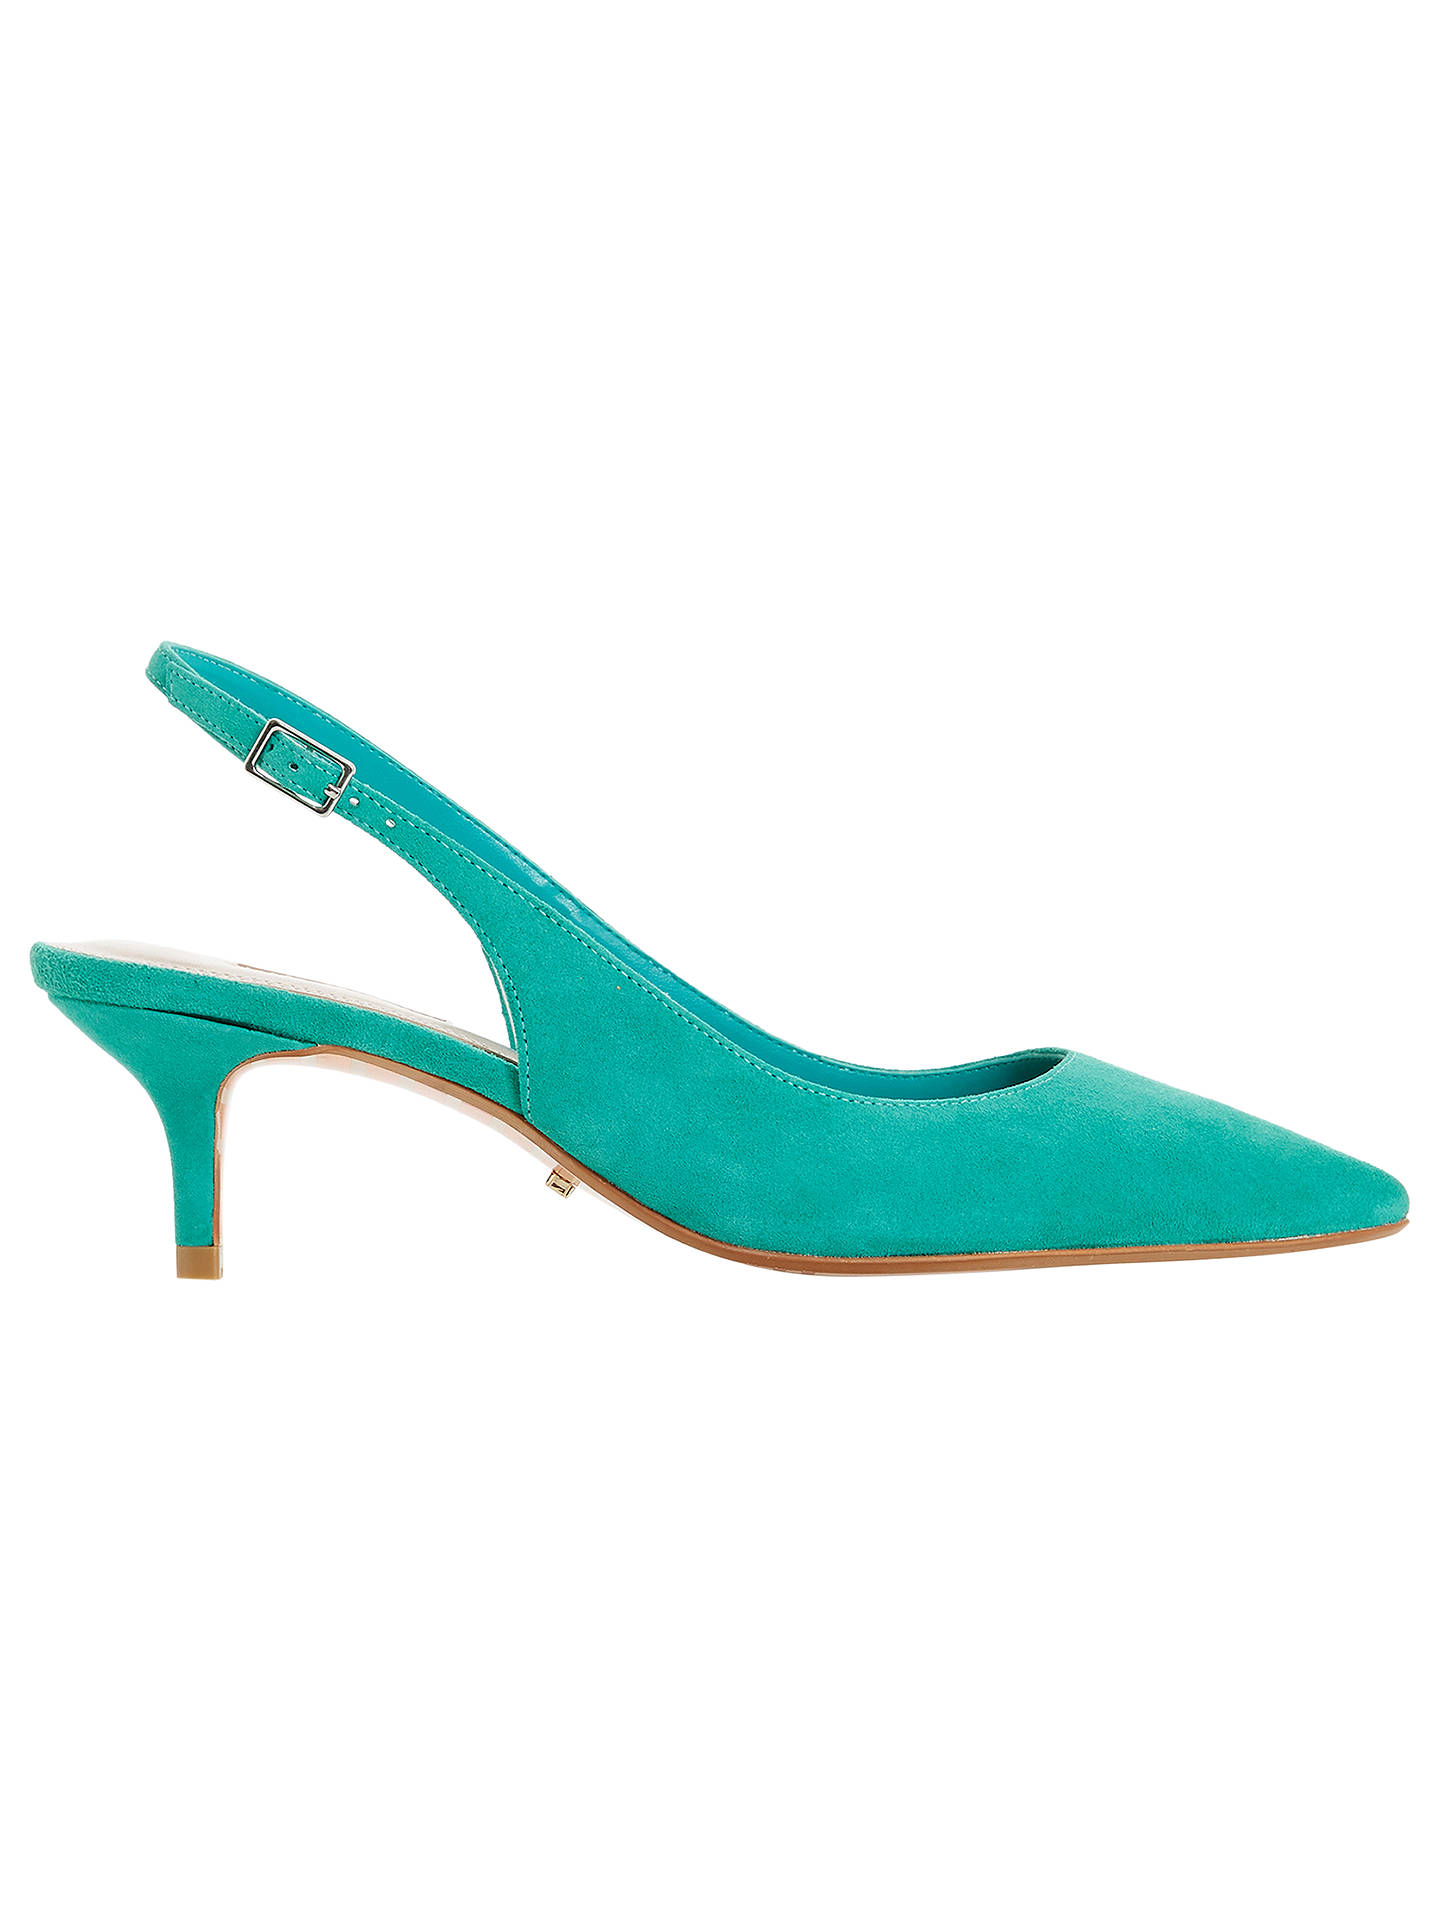 9b724fd718f Dune Casandra Kitten Heel Slingback Court Shoes at John Lewis   Partners